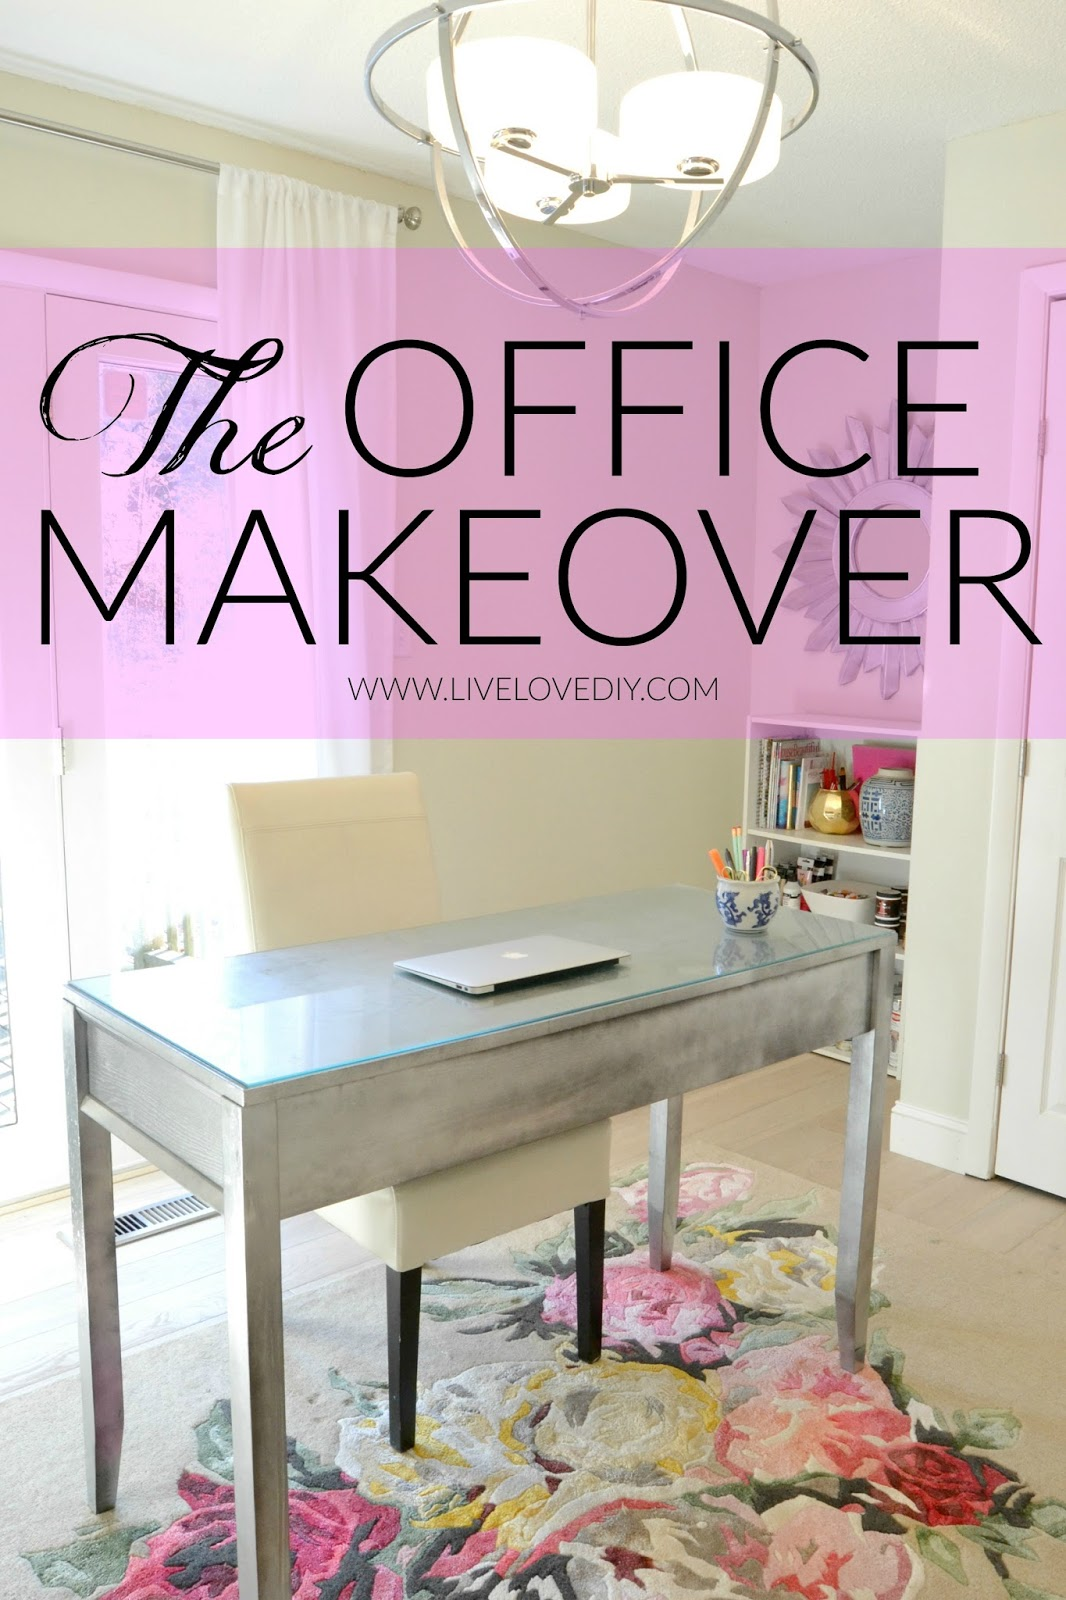 Livelovediy home office decorating ideas my latest for Home office makeover ideas